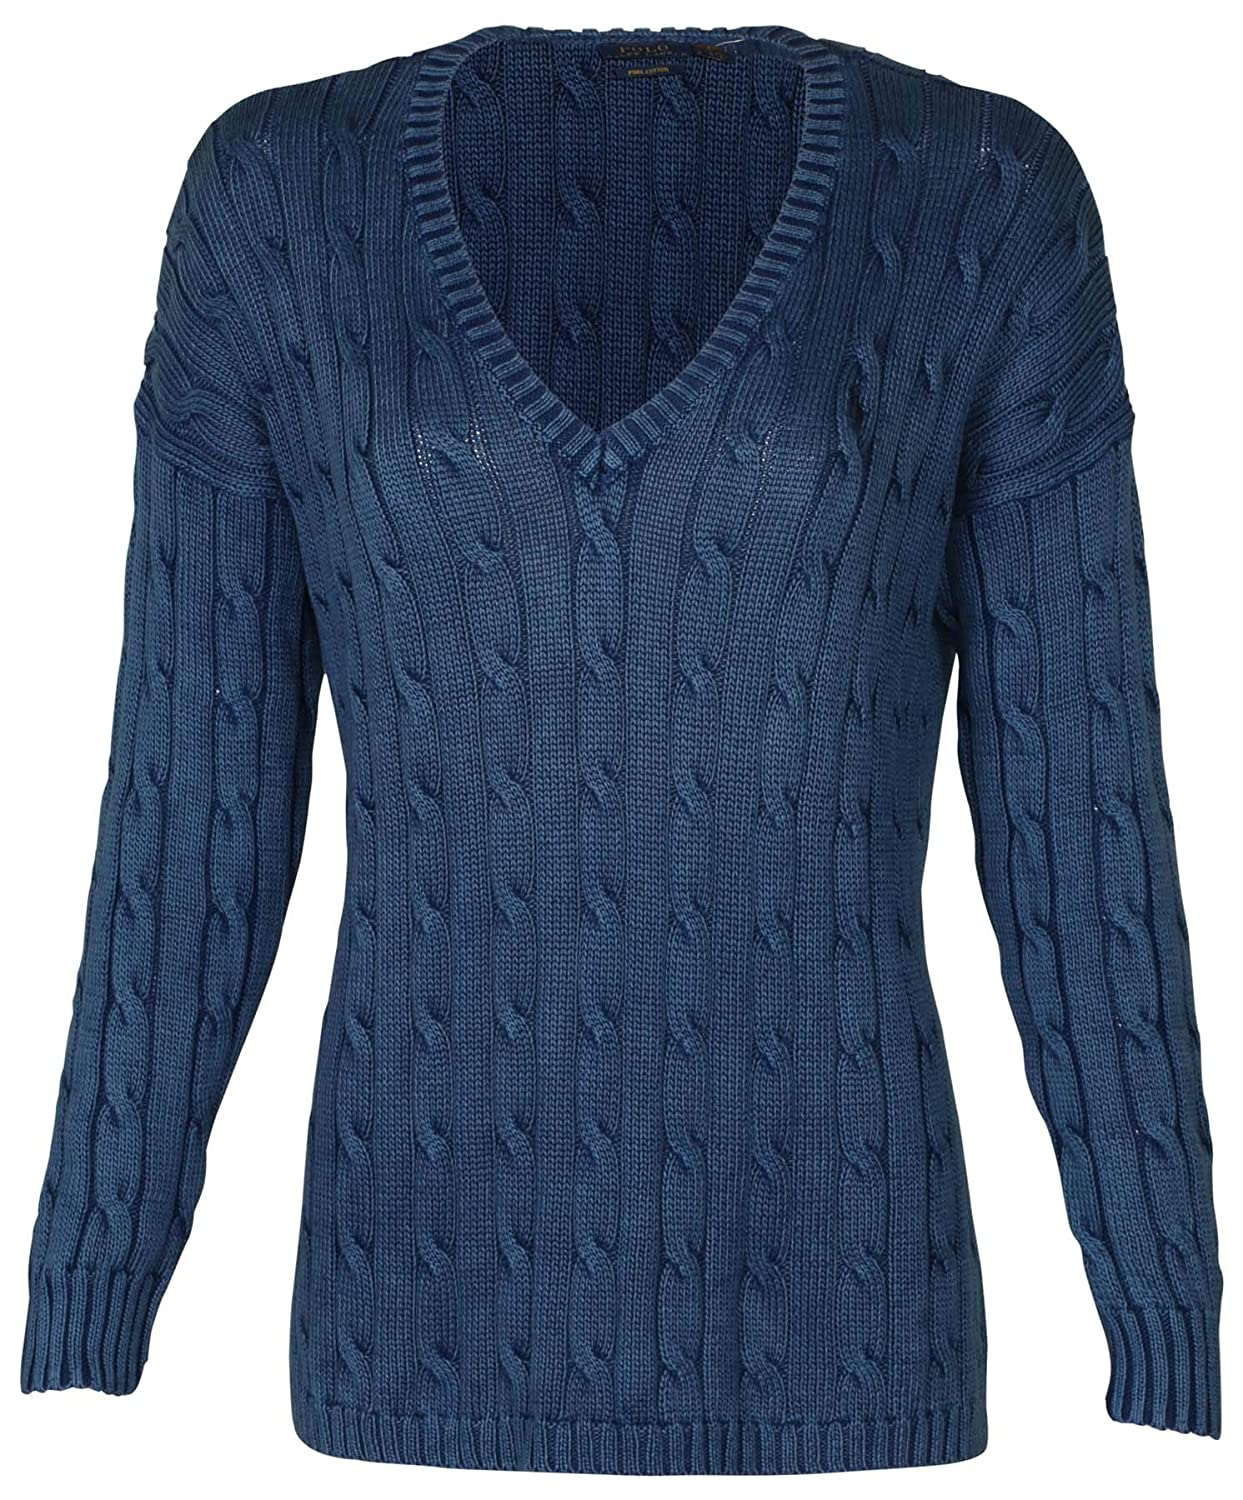 e3ca3efff7e Polo Ralph Lauren Womens Sweater Cable Knit Split Hem V Neck (M, Blue)